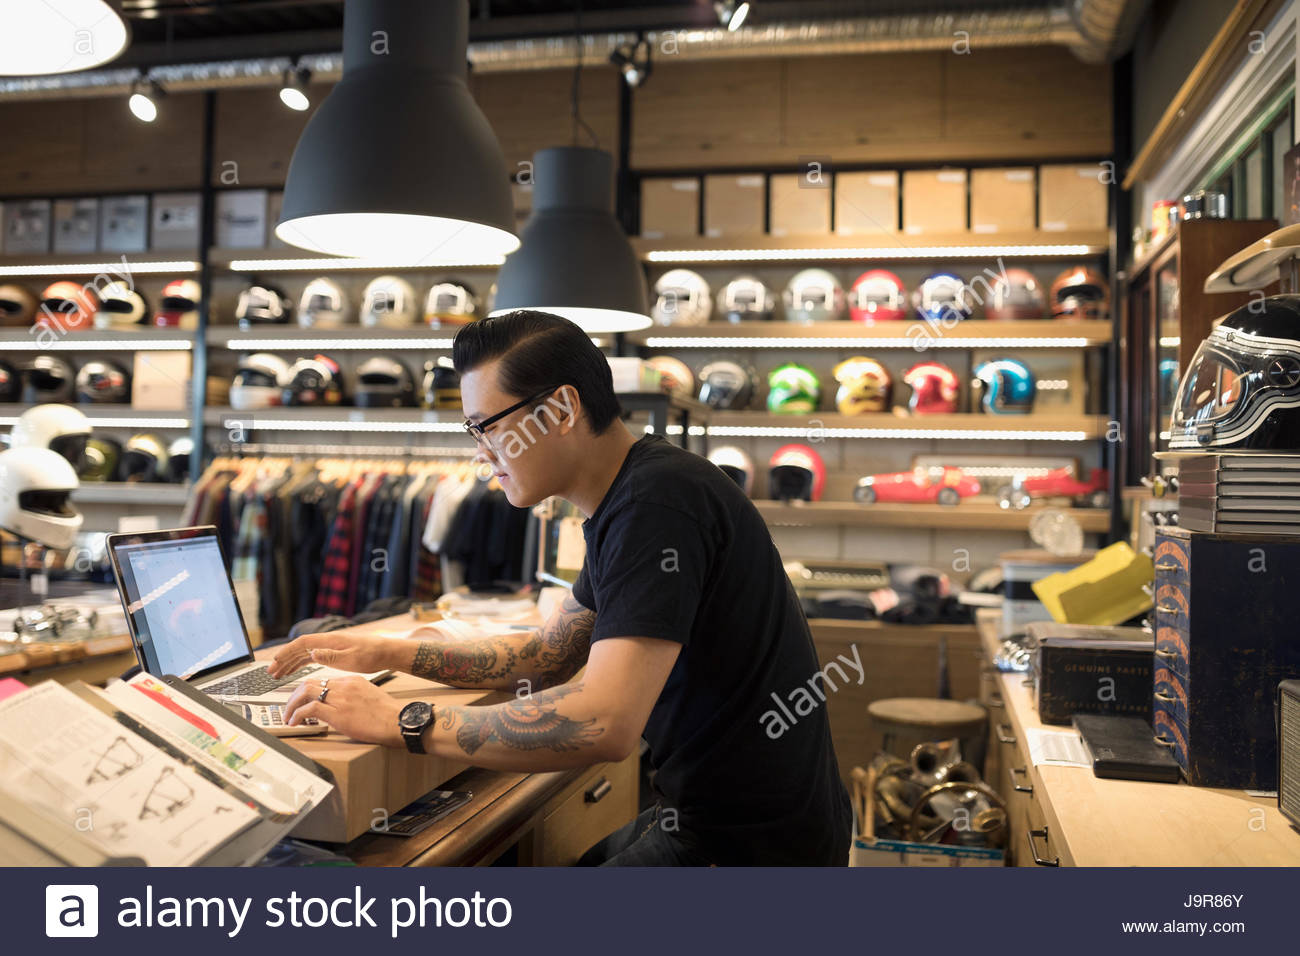 Motorcycle shop owner working at laptop behind counter - Stock Image